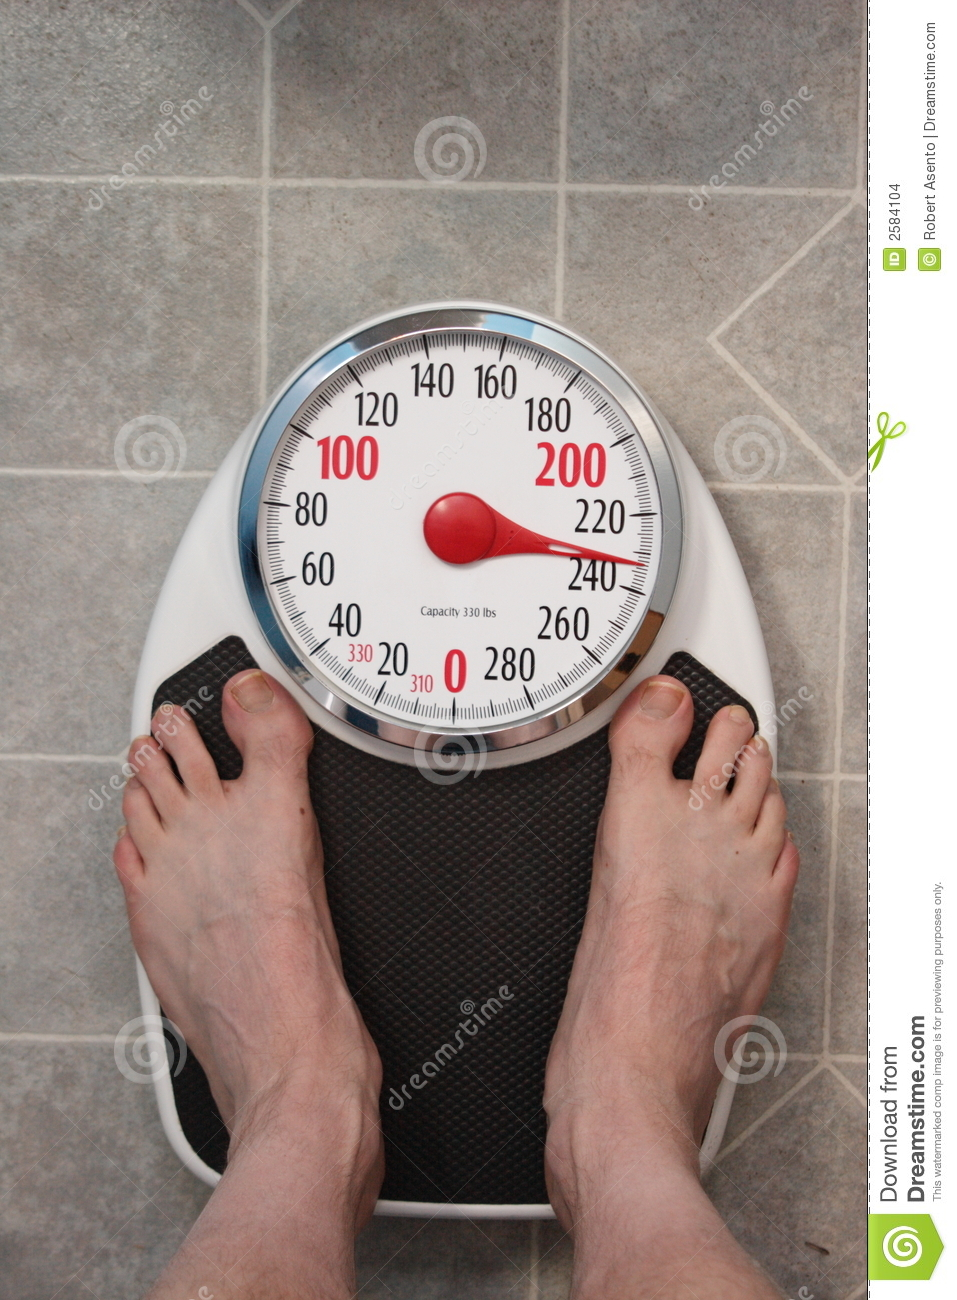 Bathroom Scale Stock Images - Image: 2584104